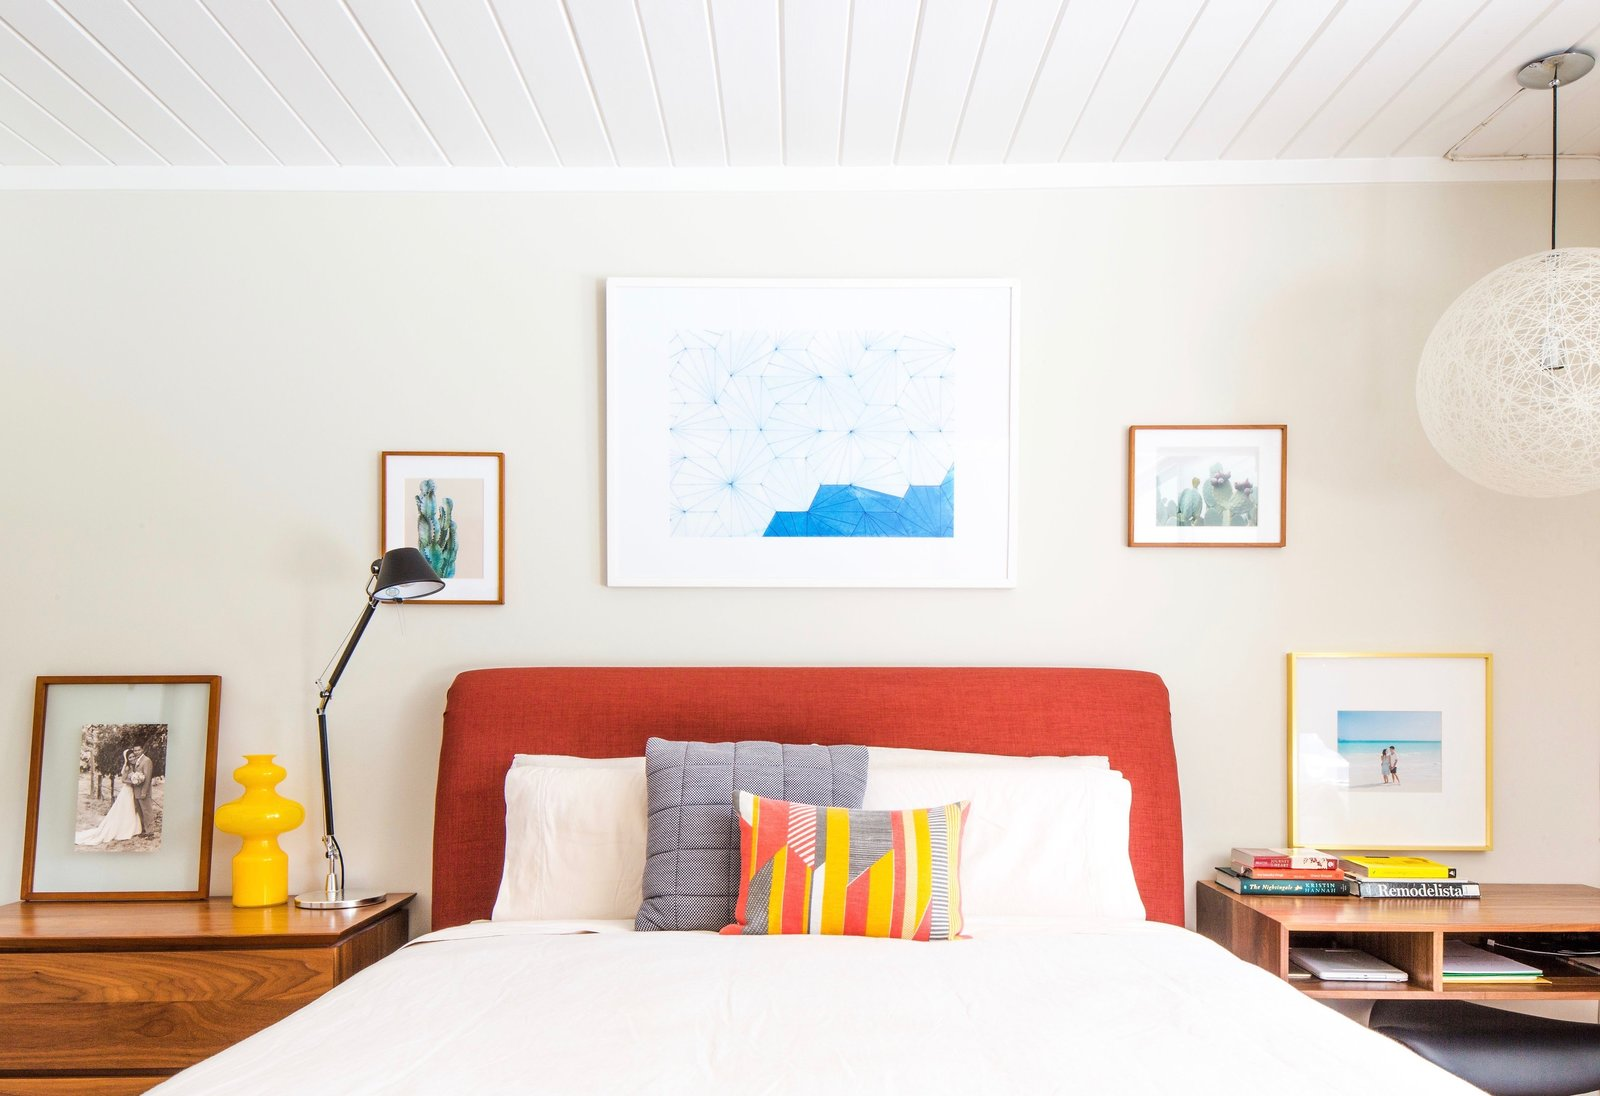 Bedroom, Bed, Night Stands, Pendant Lighting, Table Lighting, and Lamps A few simple pieces of artwork can tie a room together without a huge cost.  Photo 9 of 9 in When to Save Versus Splurge in Your Bedroom Revamp from An Interior Designer Launches Her Career by Renovating Her Family's Midcentury Eichler